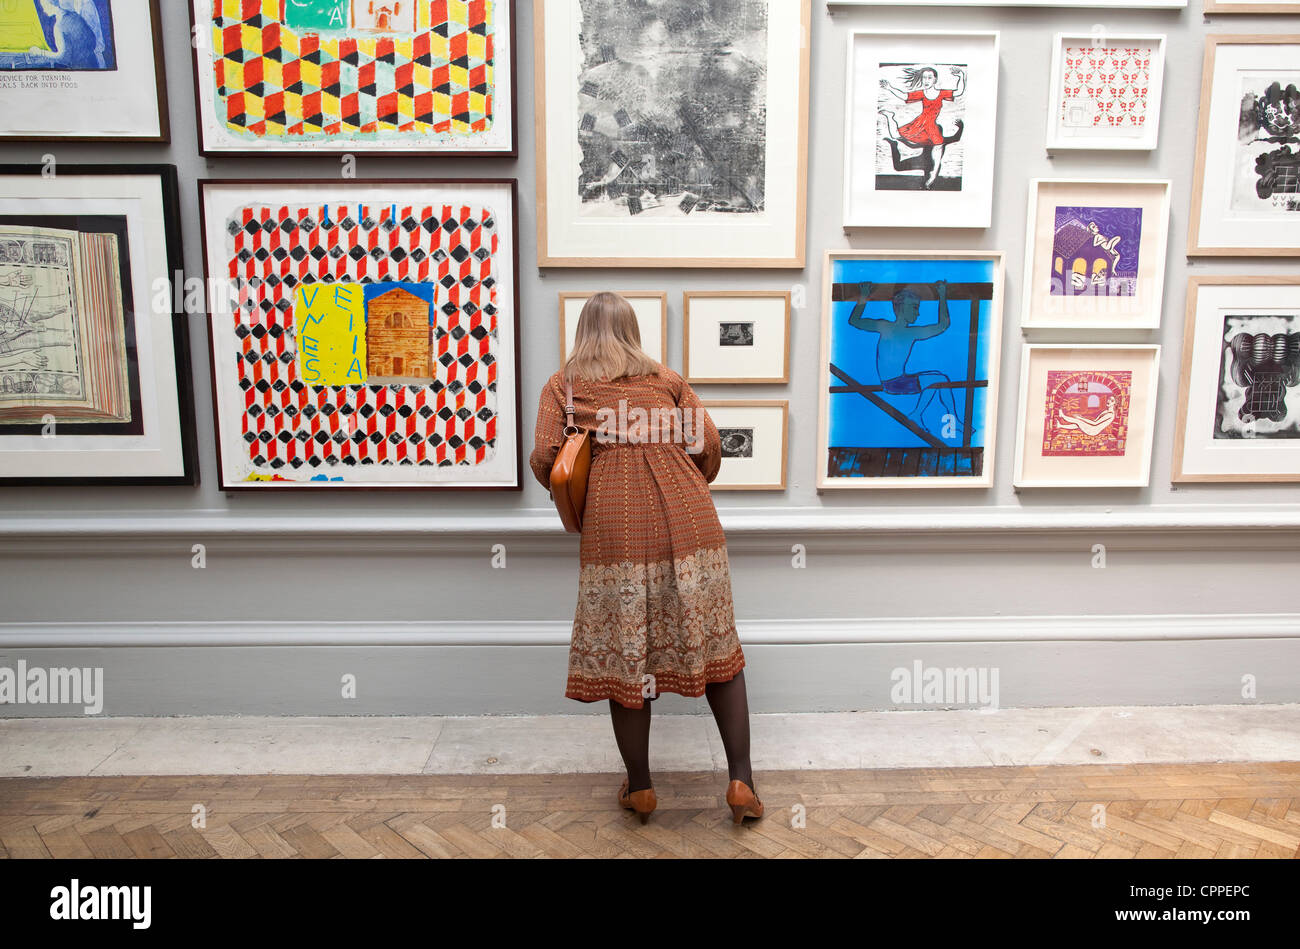 28/05/2012. Royal Academy of Arts Summer Exhibition, London, UK. Image shows various art works being viewed in Gallery - Stock Image